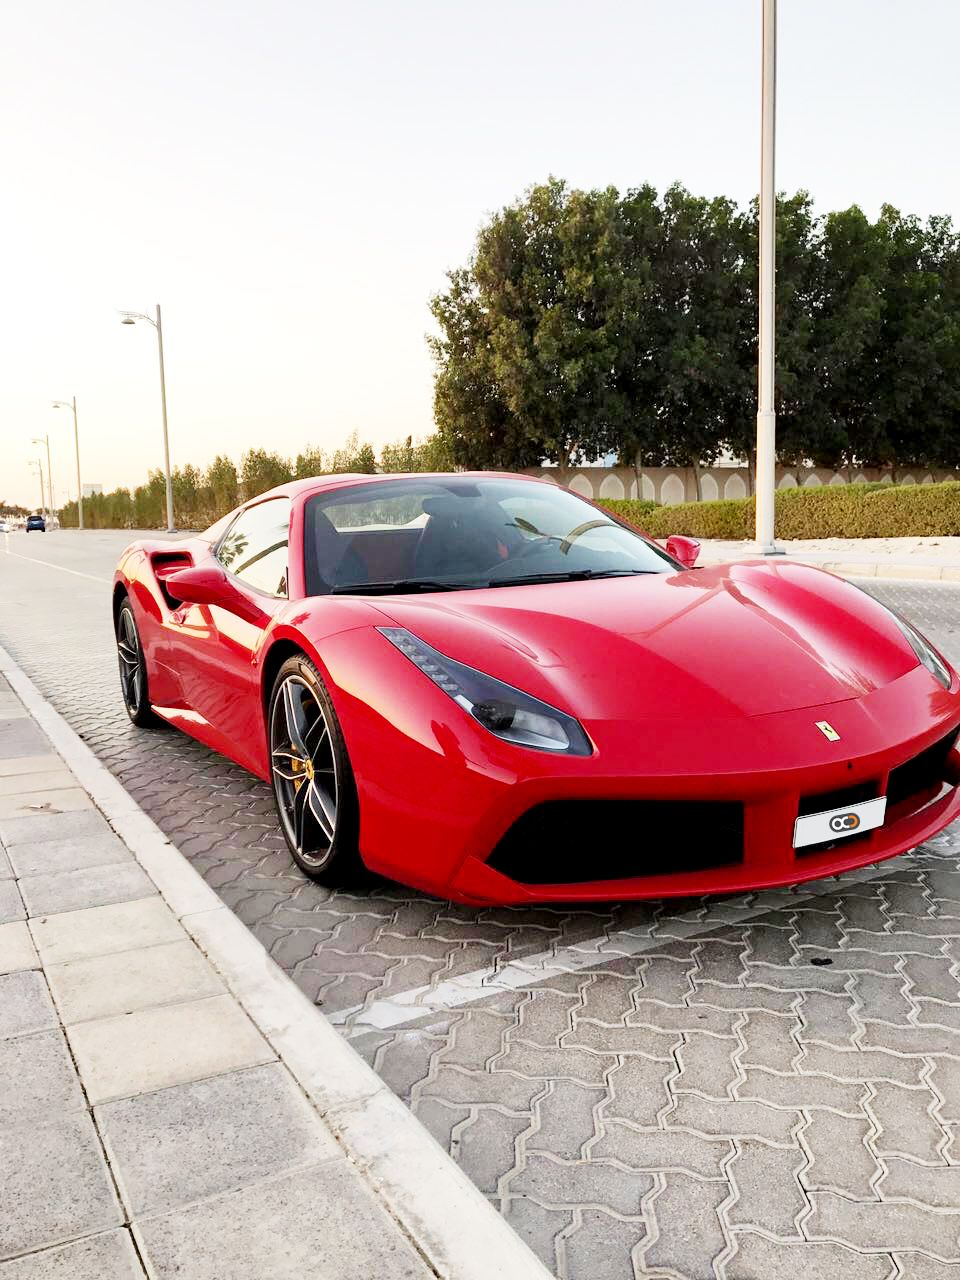 Drive The Iconic 2018 Ferrari 488 Spider In Dubai For Only Aed 3500 Day Rental Cost Includes Comprehensive Insurance And 250 Super Esportivo Esportes